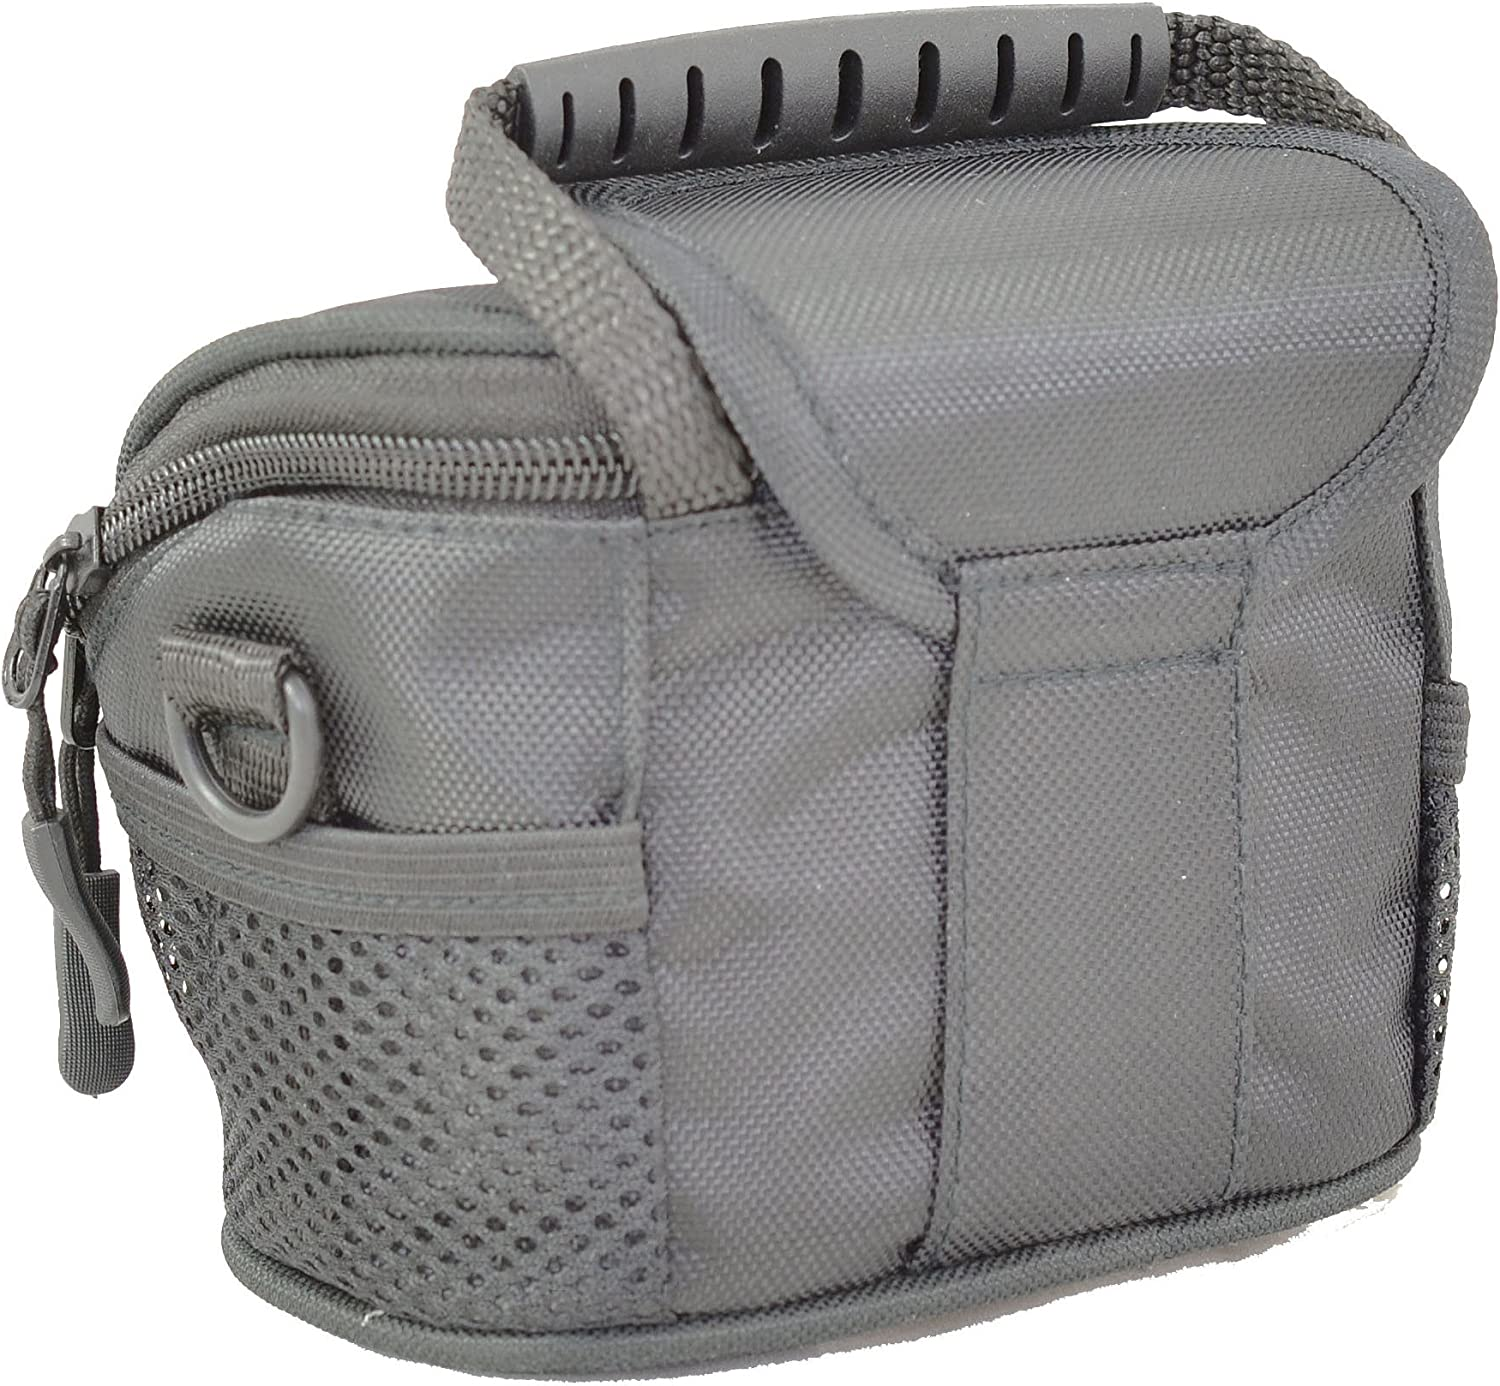 Free UK Postage AAS Black DV Camcorder Case Bag for Canon LEGRIA HF R106 S21 S20 S200 M32 M31 M36